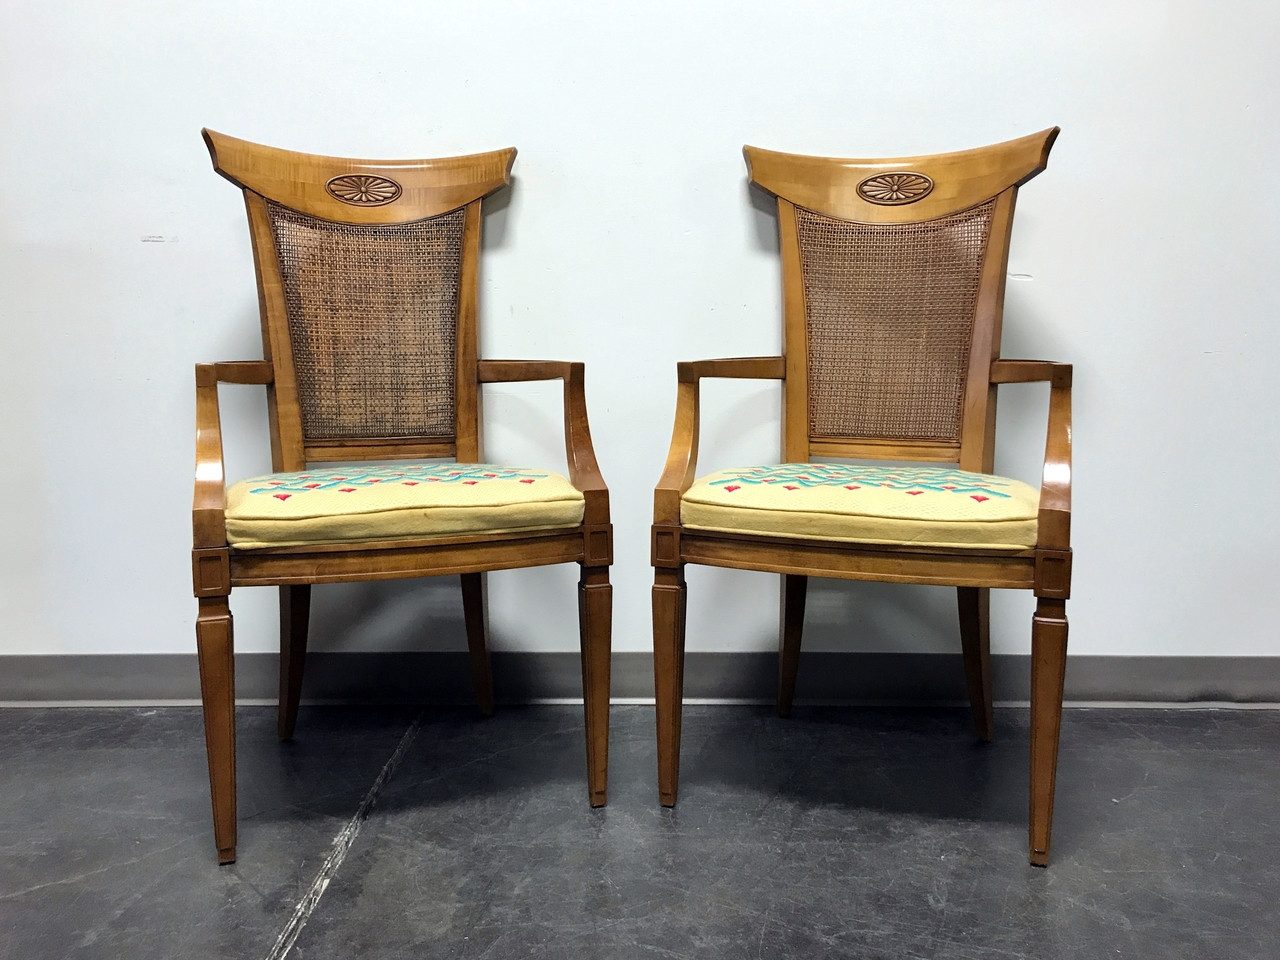 drexel heritage palazzo italian provincial neoclassical cane dining